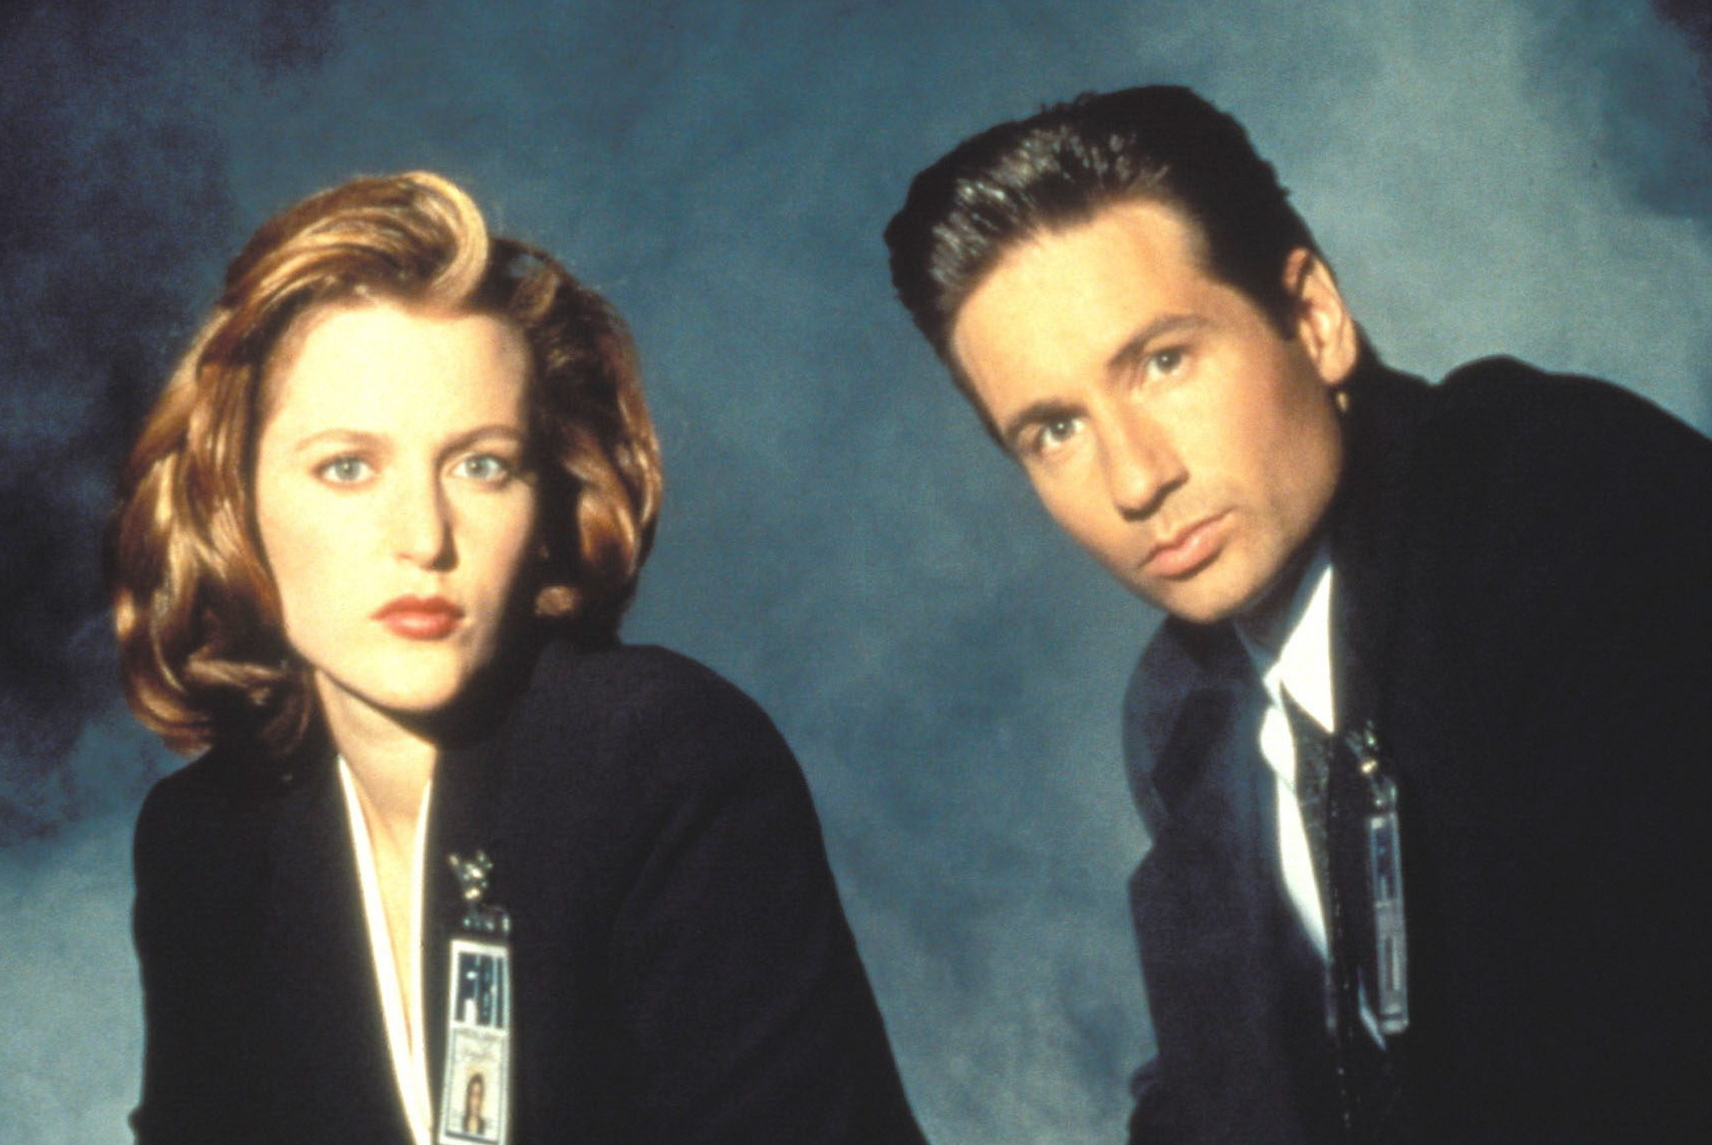 Do you remember Mulder and Scully from 'The X-Files'?